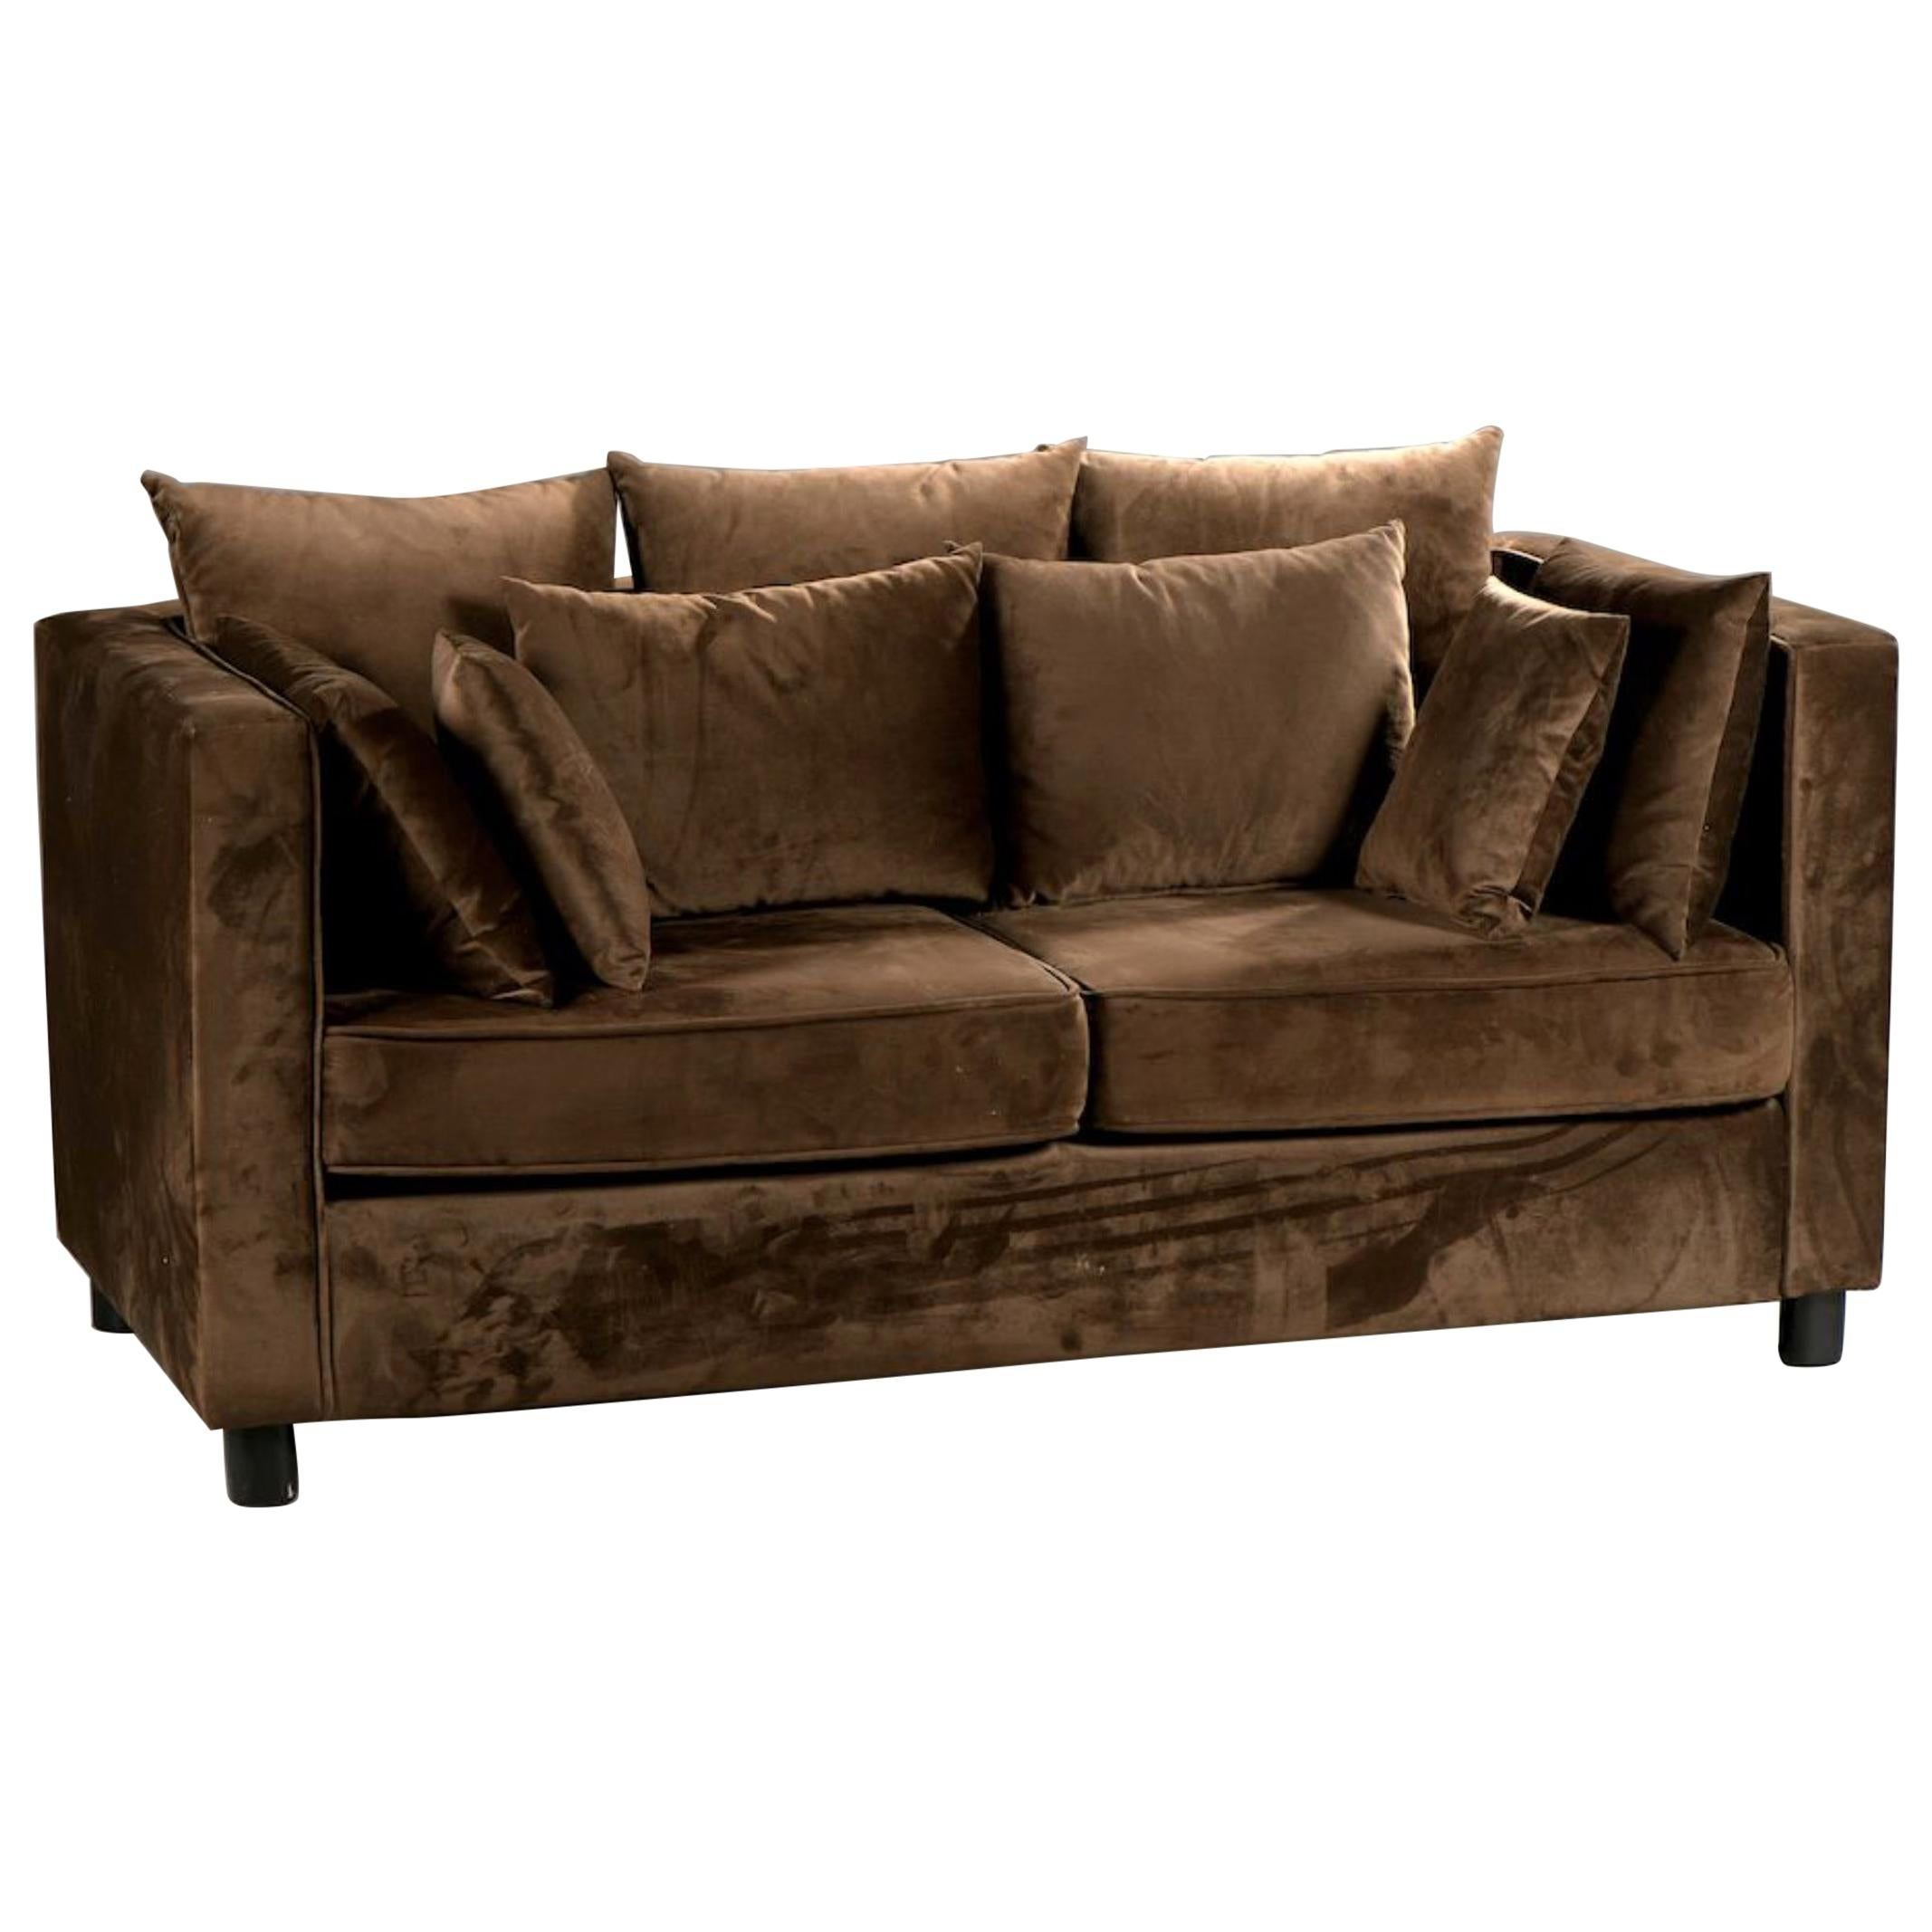 20th Century French Chocolate Brown Two-Seated Velvet Sofa with Set of Cushions